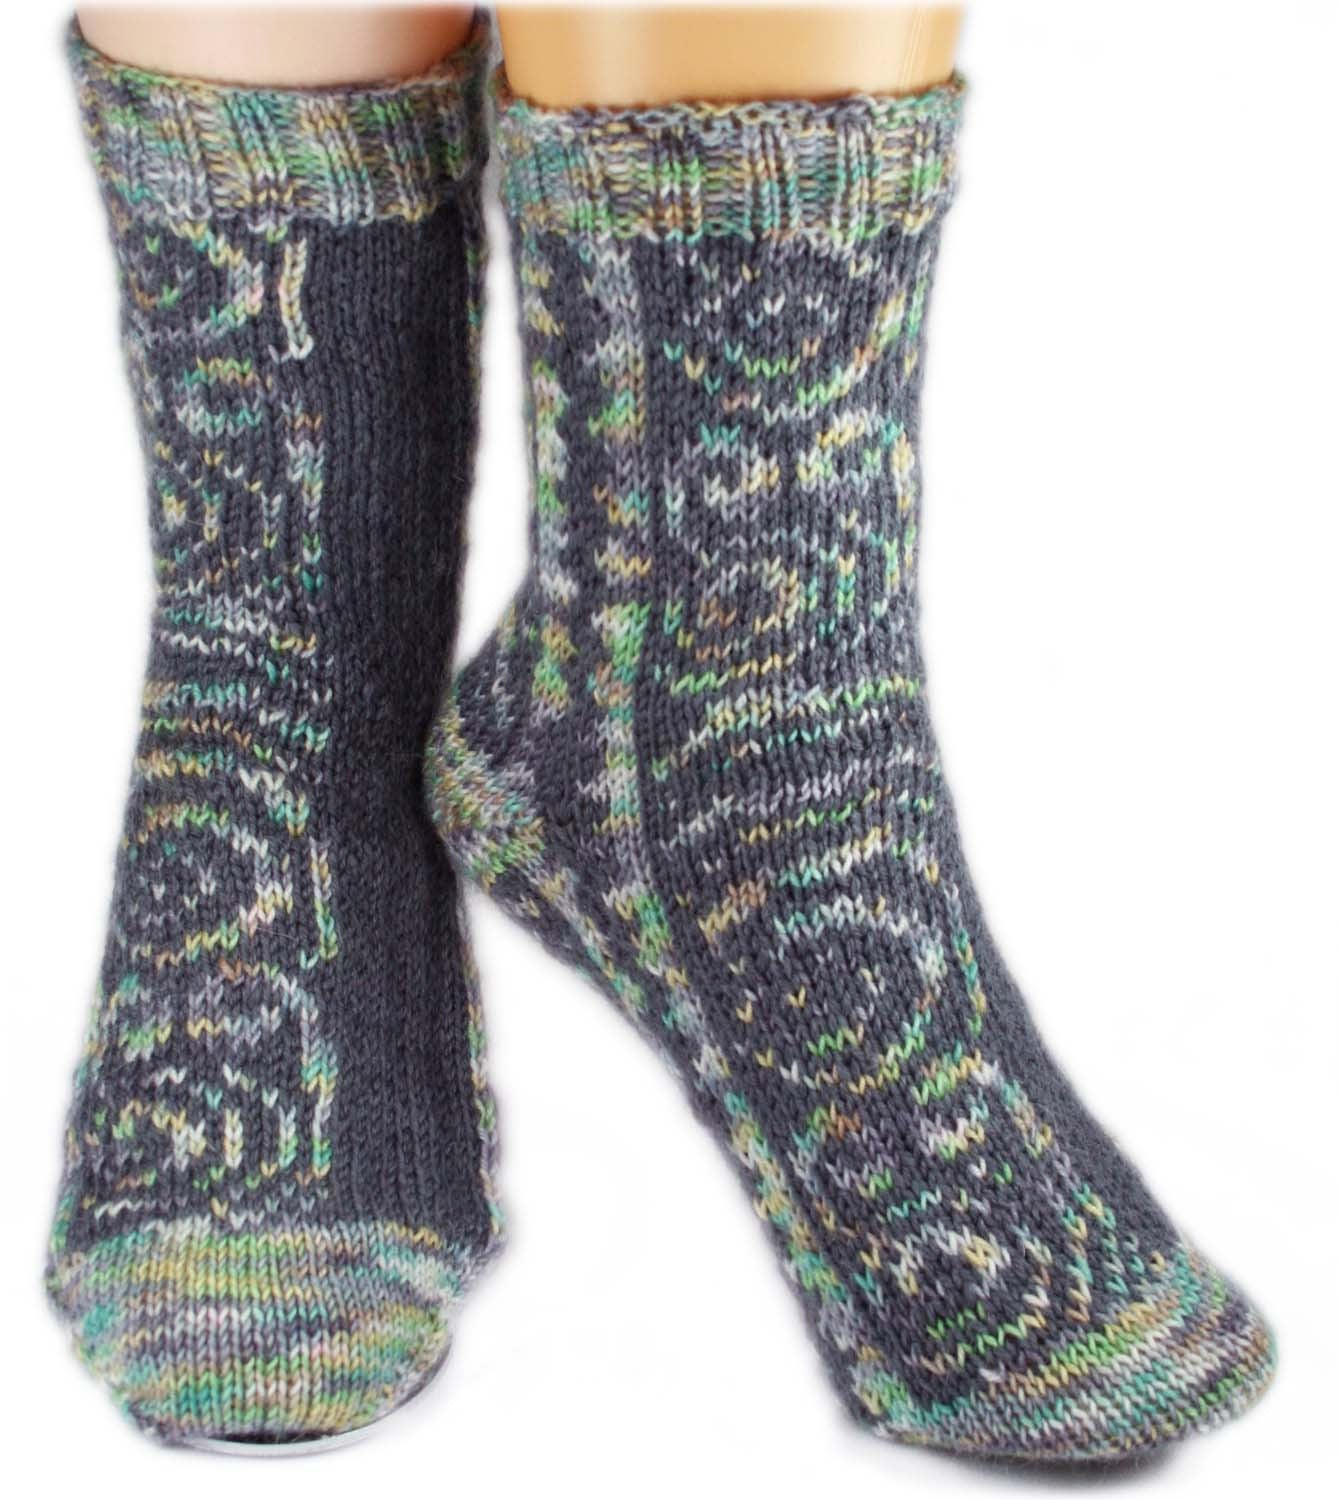 KNITTING PATTERN for Maori Tattoo Socks -  Charted Sock pattern - digital download - Colorwork Stranded knitting